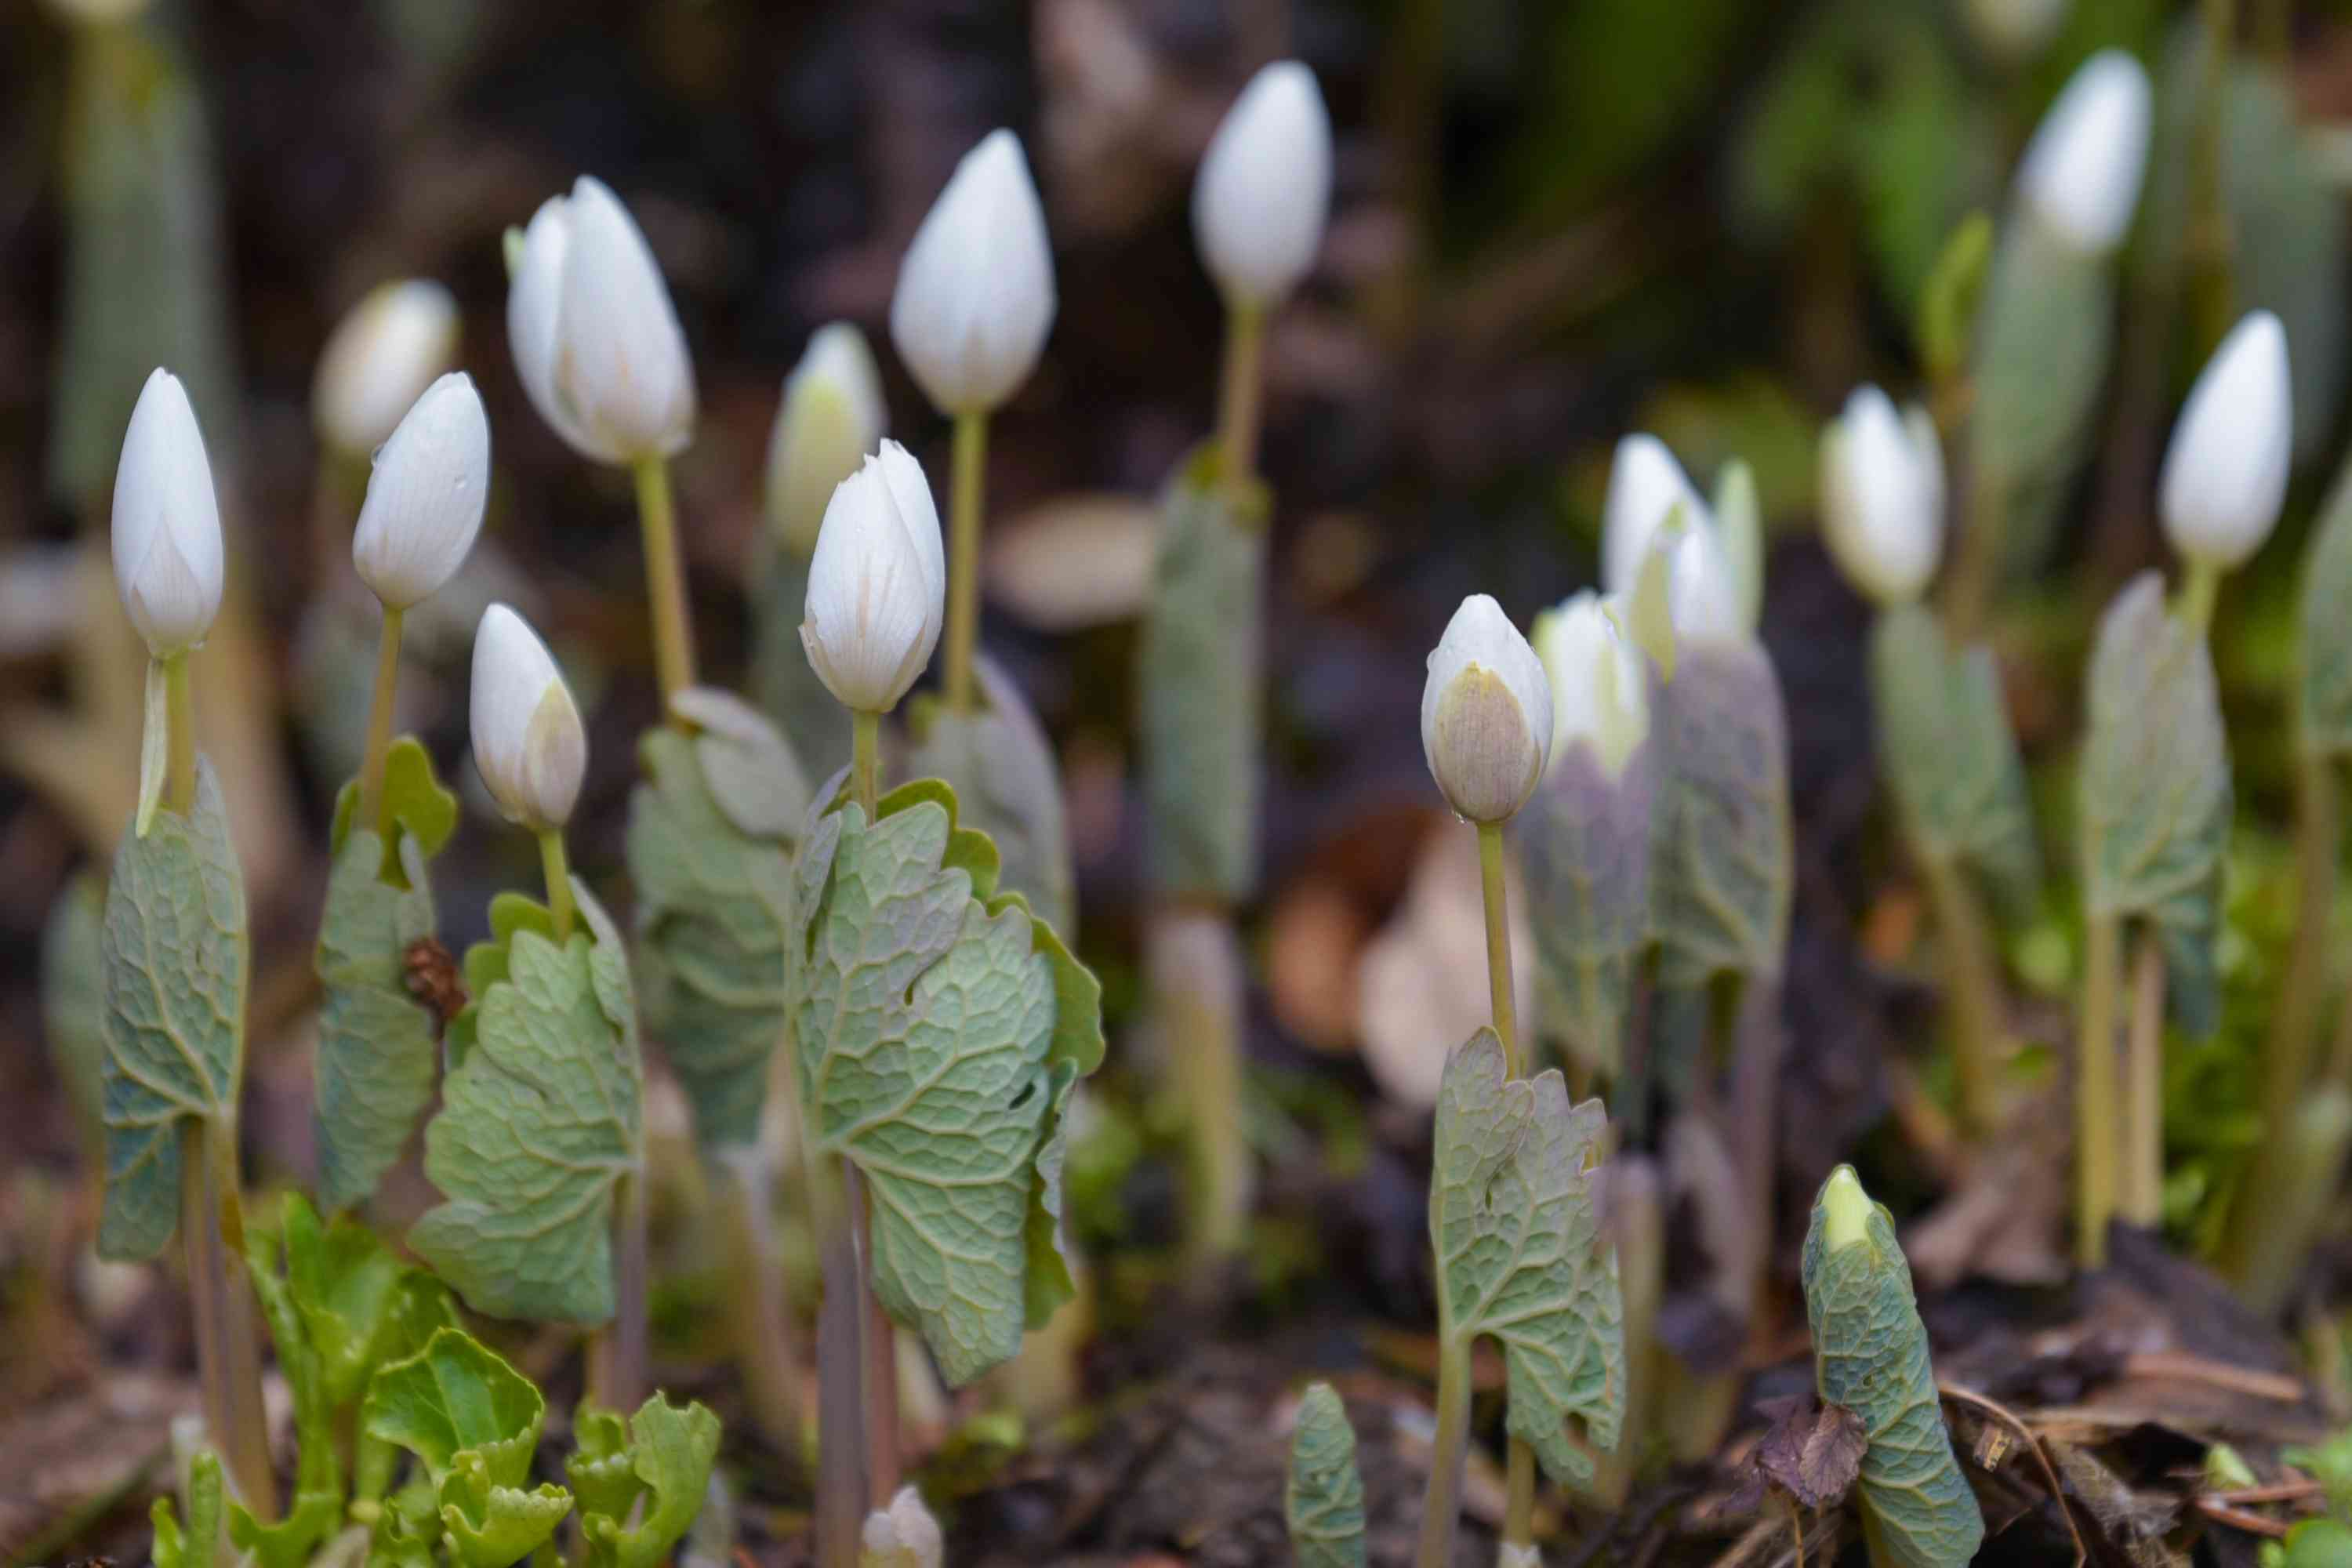 Bloodroot white flower buds with lobed and veiny leaves on thin stems